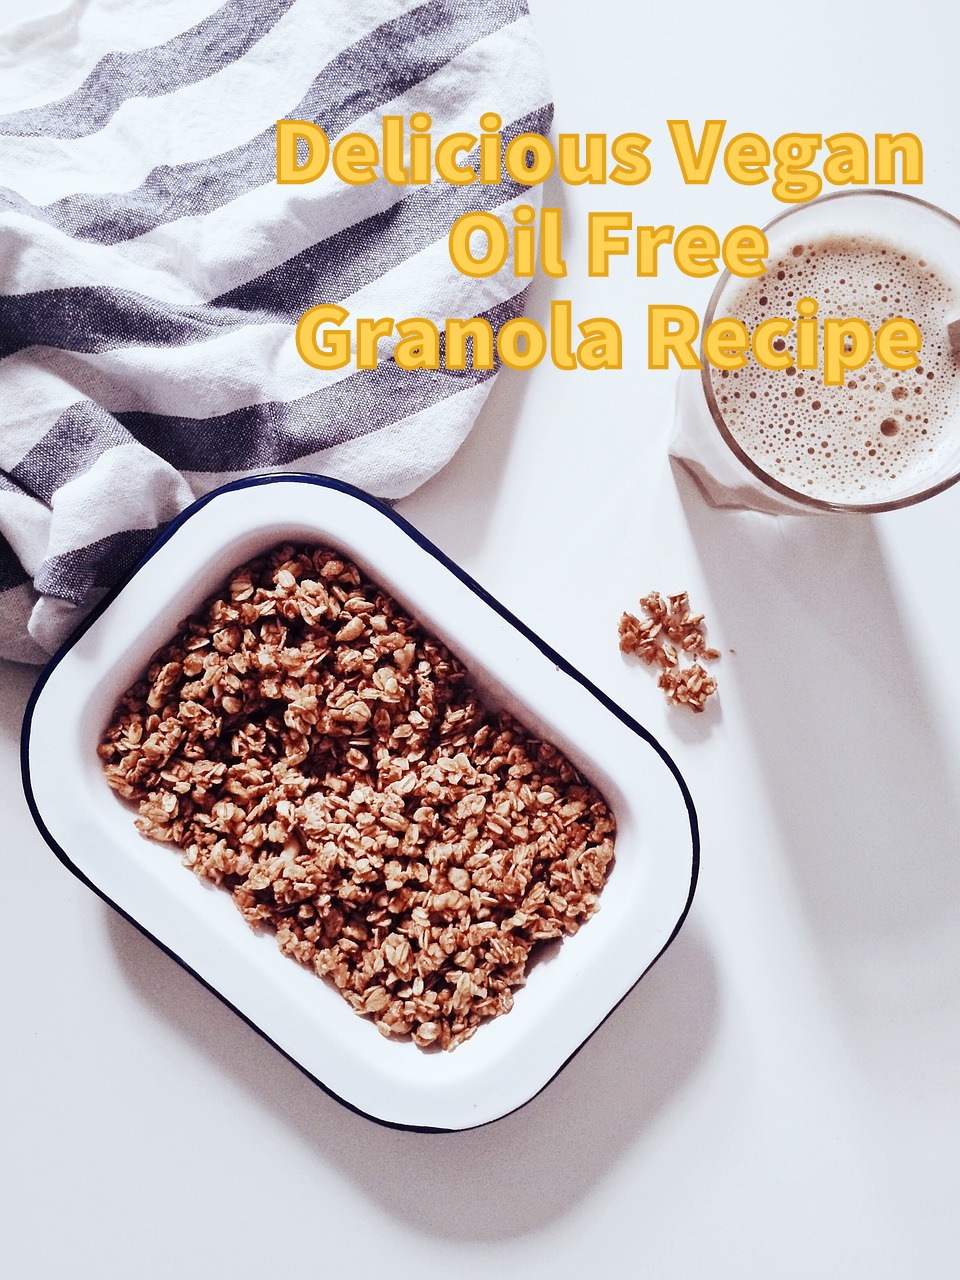 Vegan Oil Free Granola Recipe